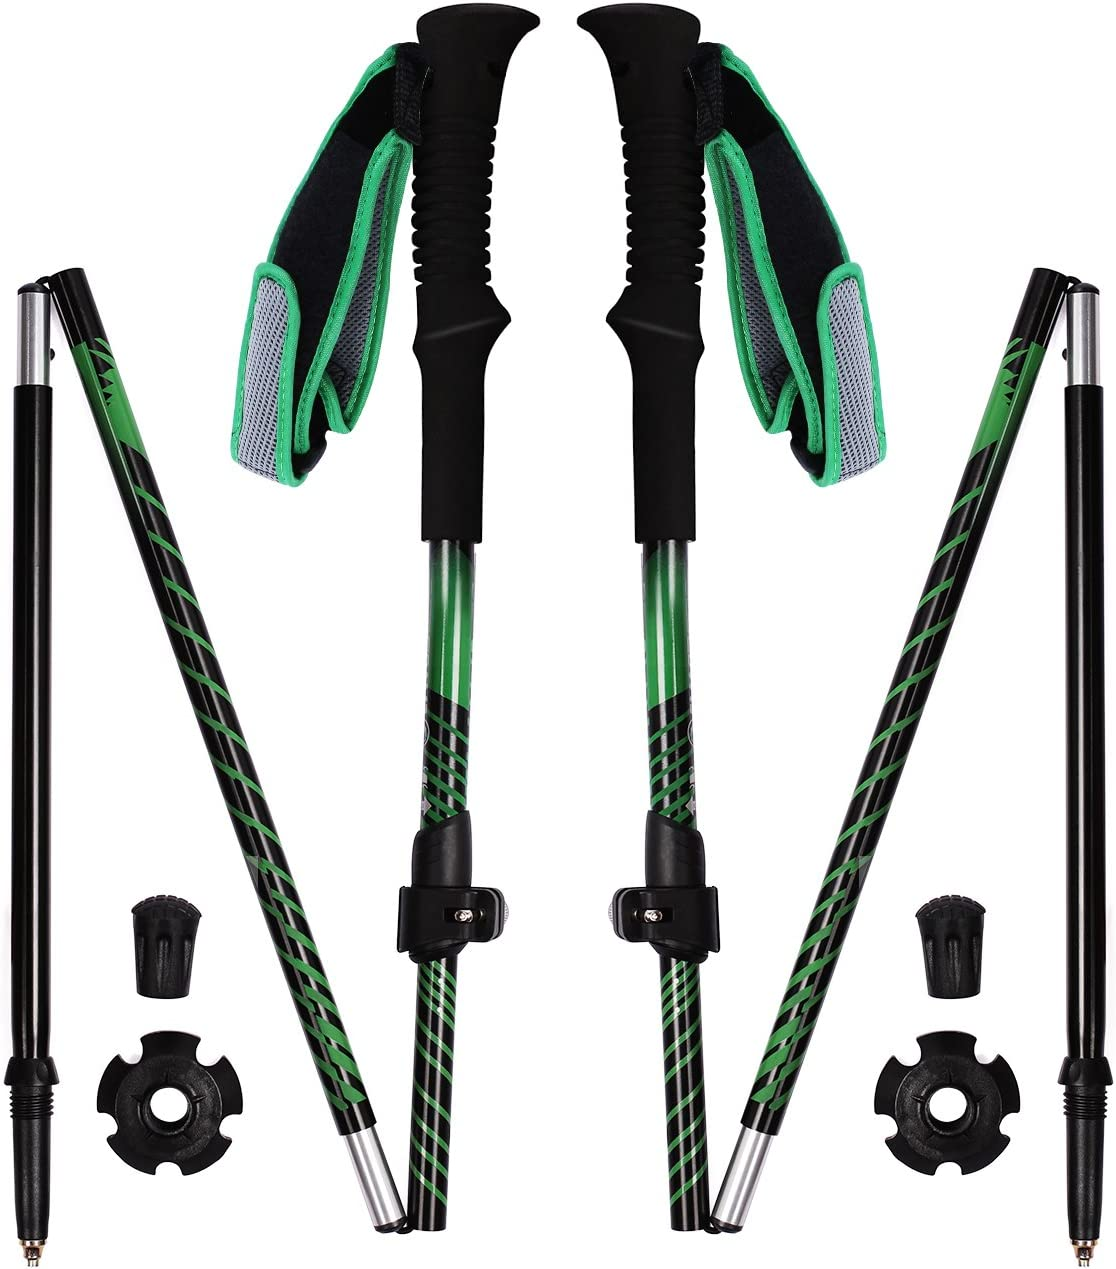 REDCAMP Aluminium Walking Sticks Collapsible,2 Pack 1 Year Warranty,Ultralight Quick Flip Lock Trekking Poles for Hiking